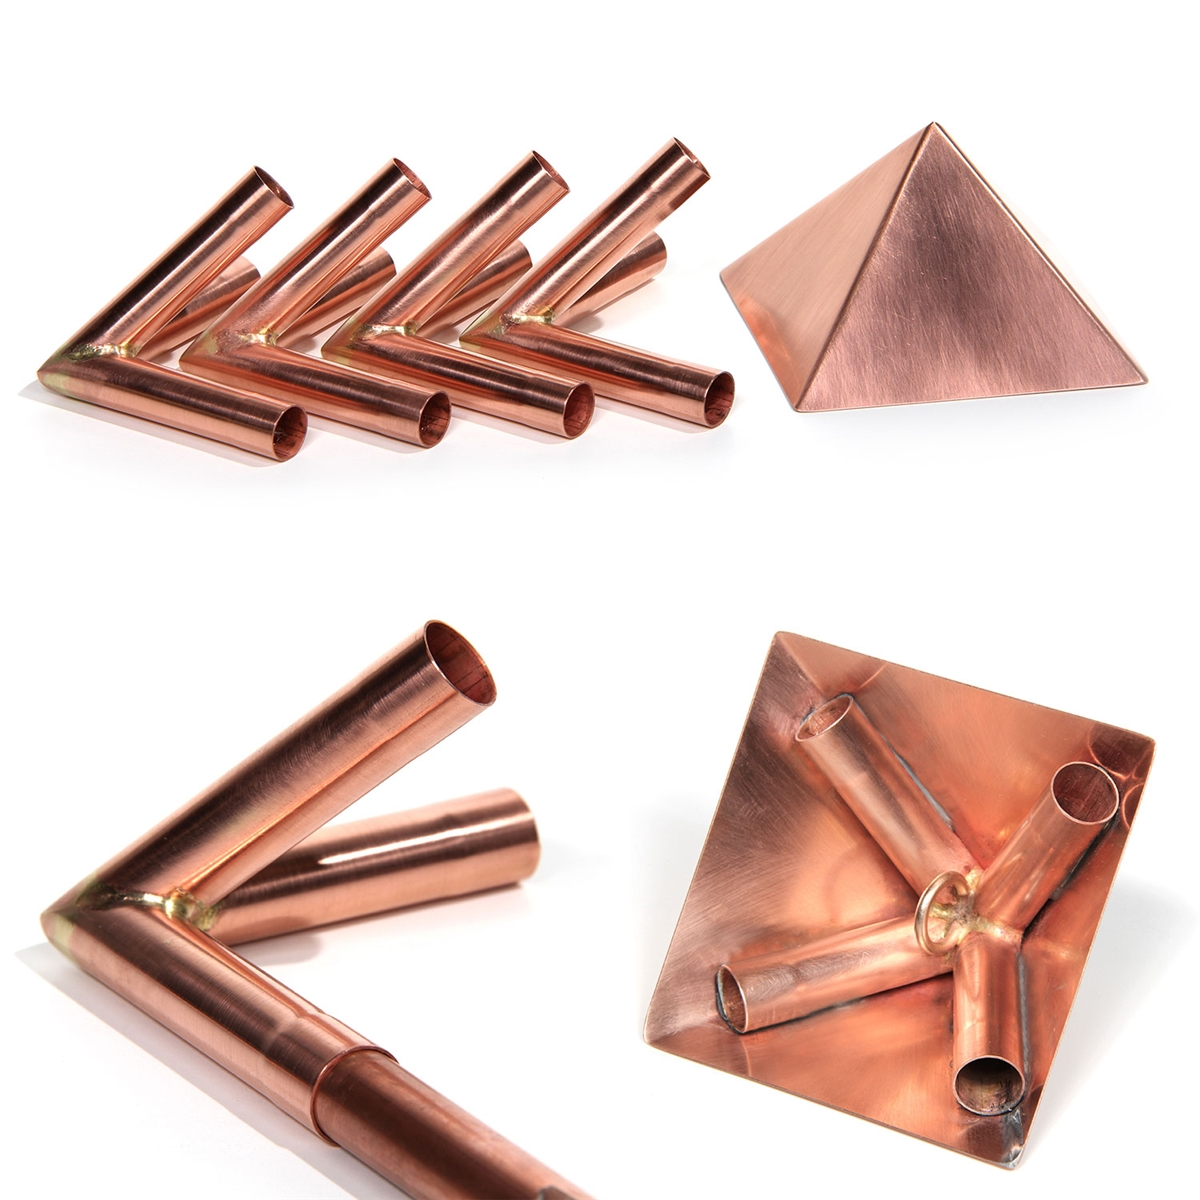 Polished Copper Meditation Pyramid Connector Kit with 4